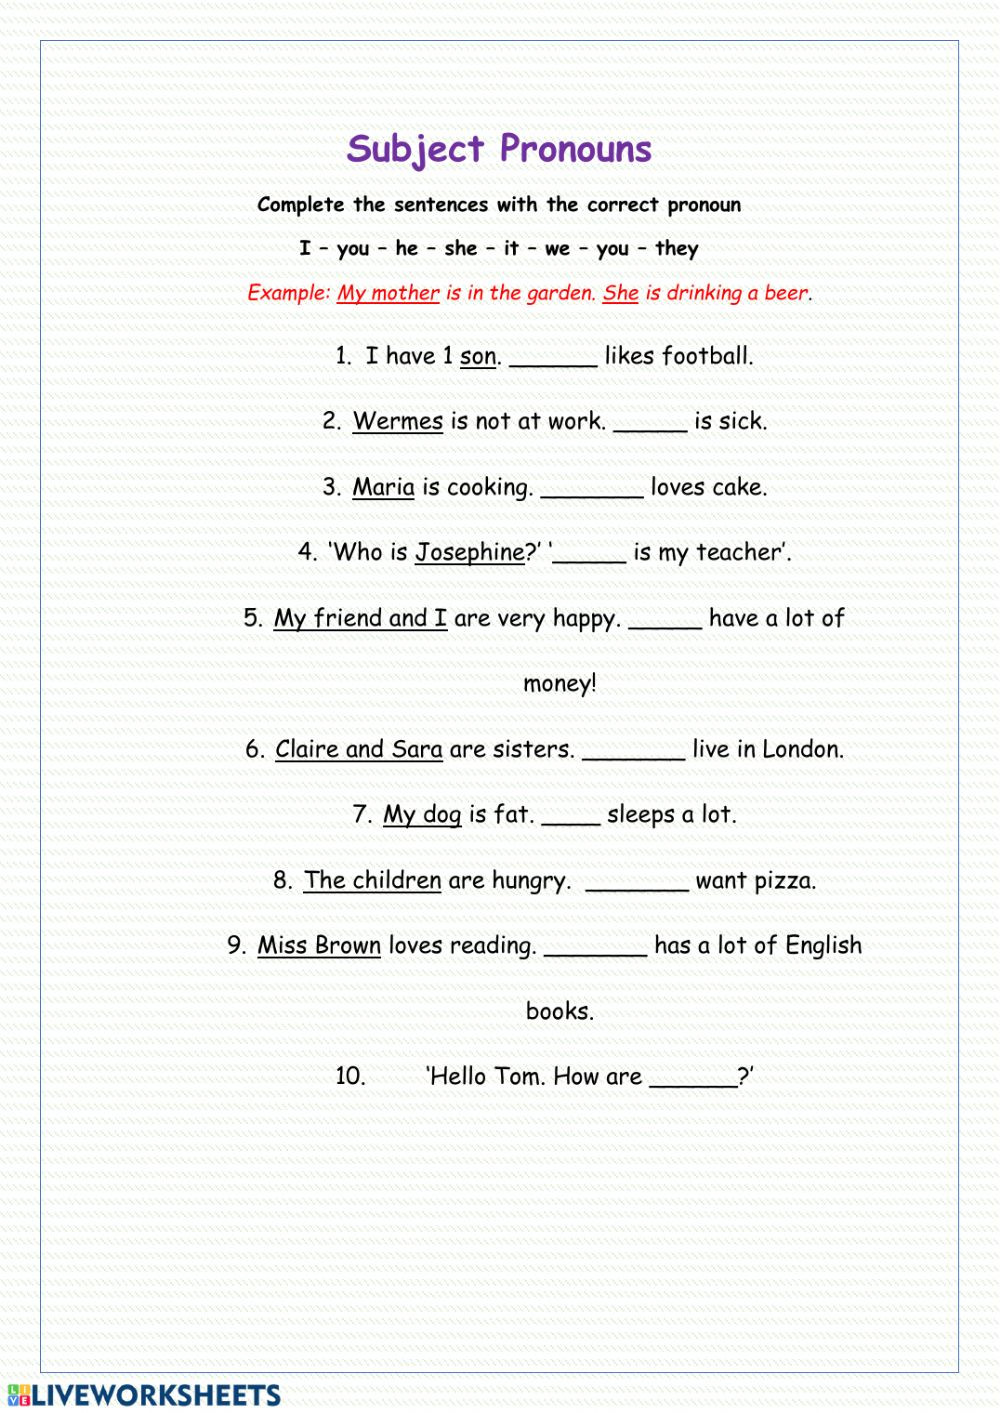 Second Grade Pronoun Worksheets Subject Pronouns Online Worksheet and Pdf